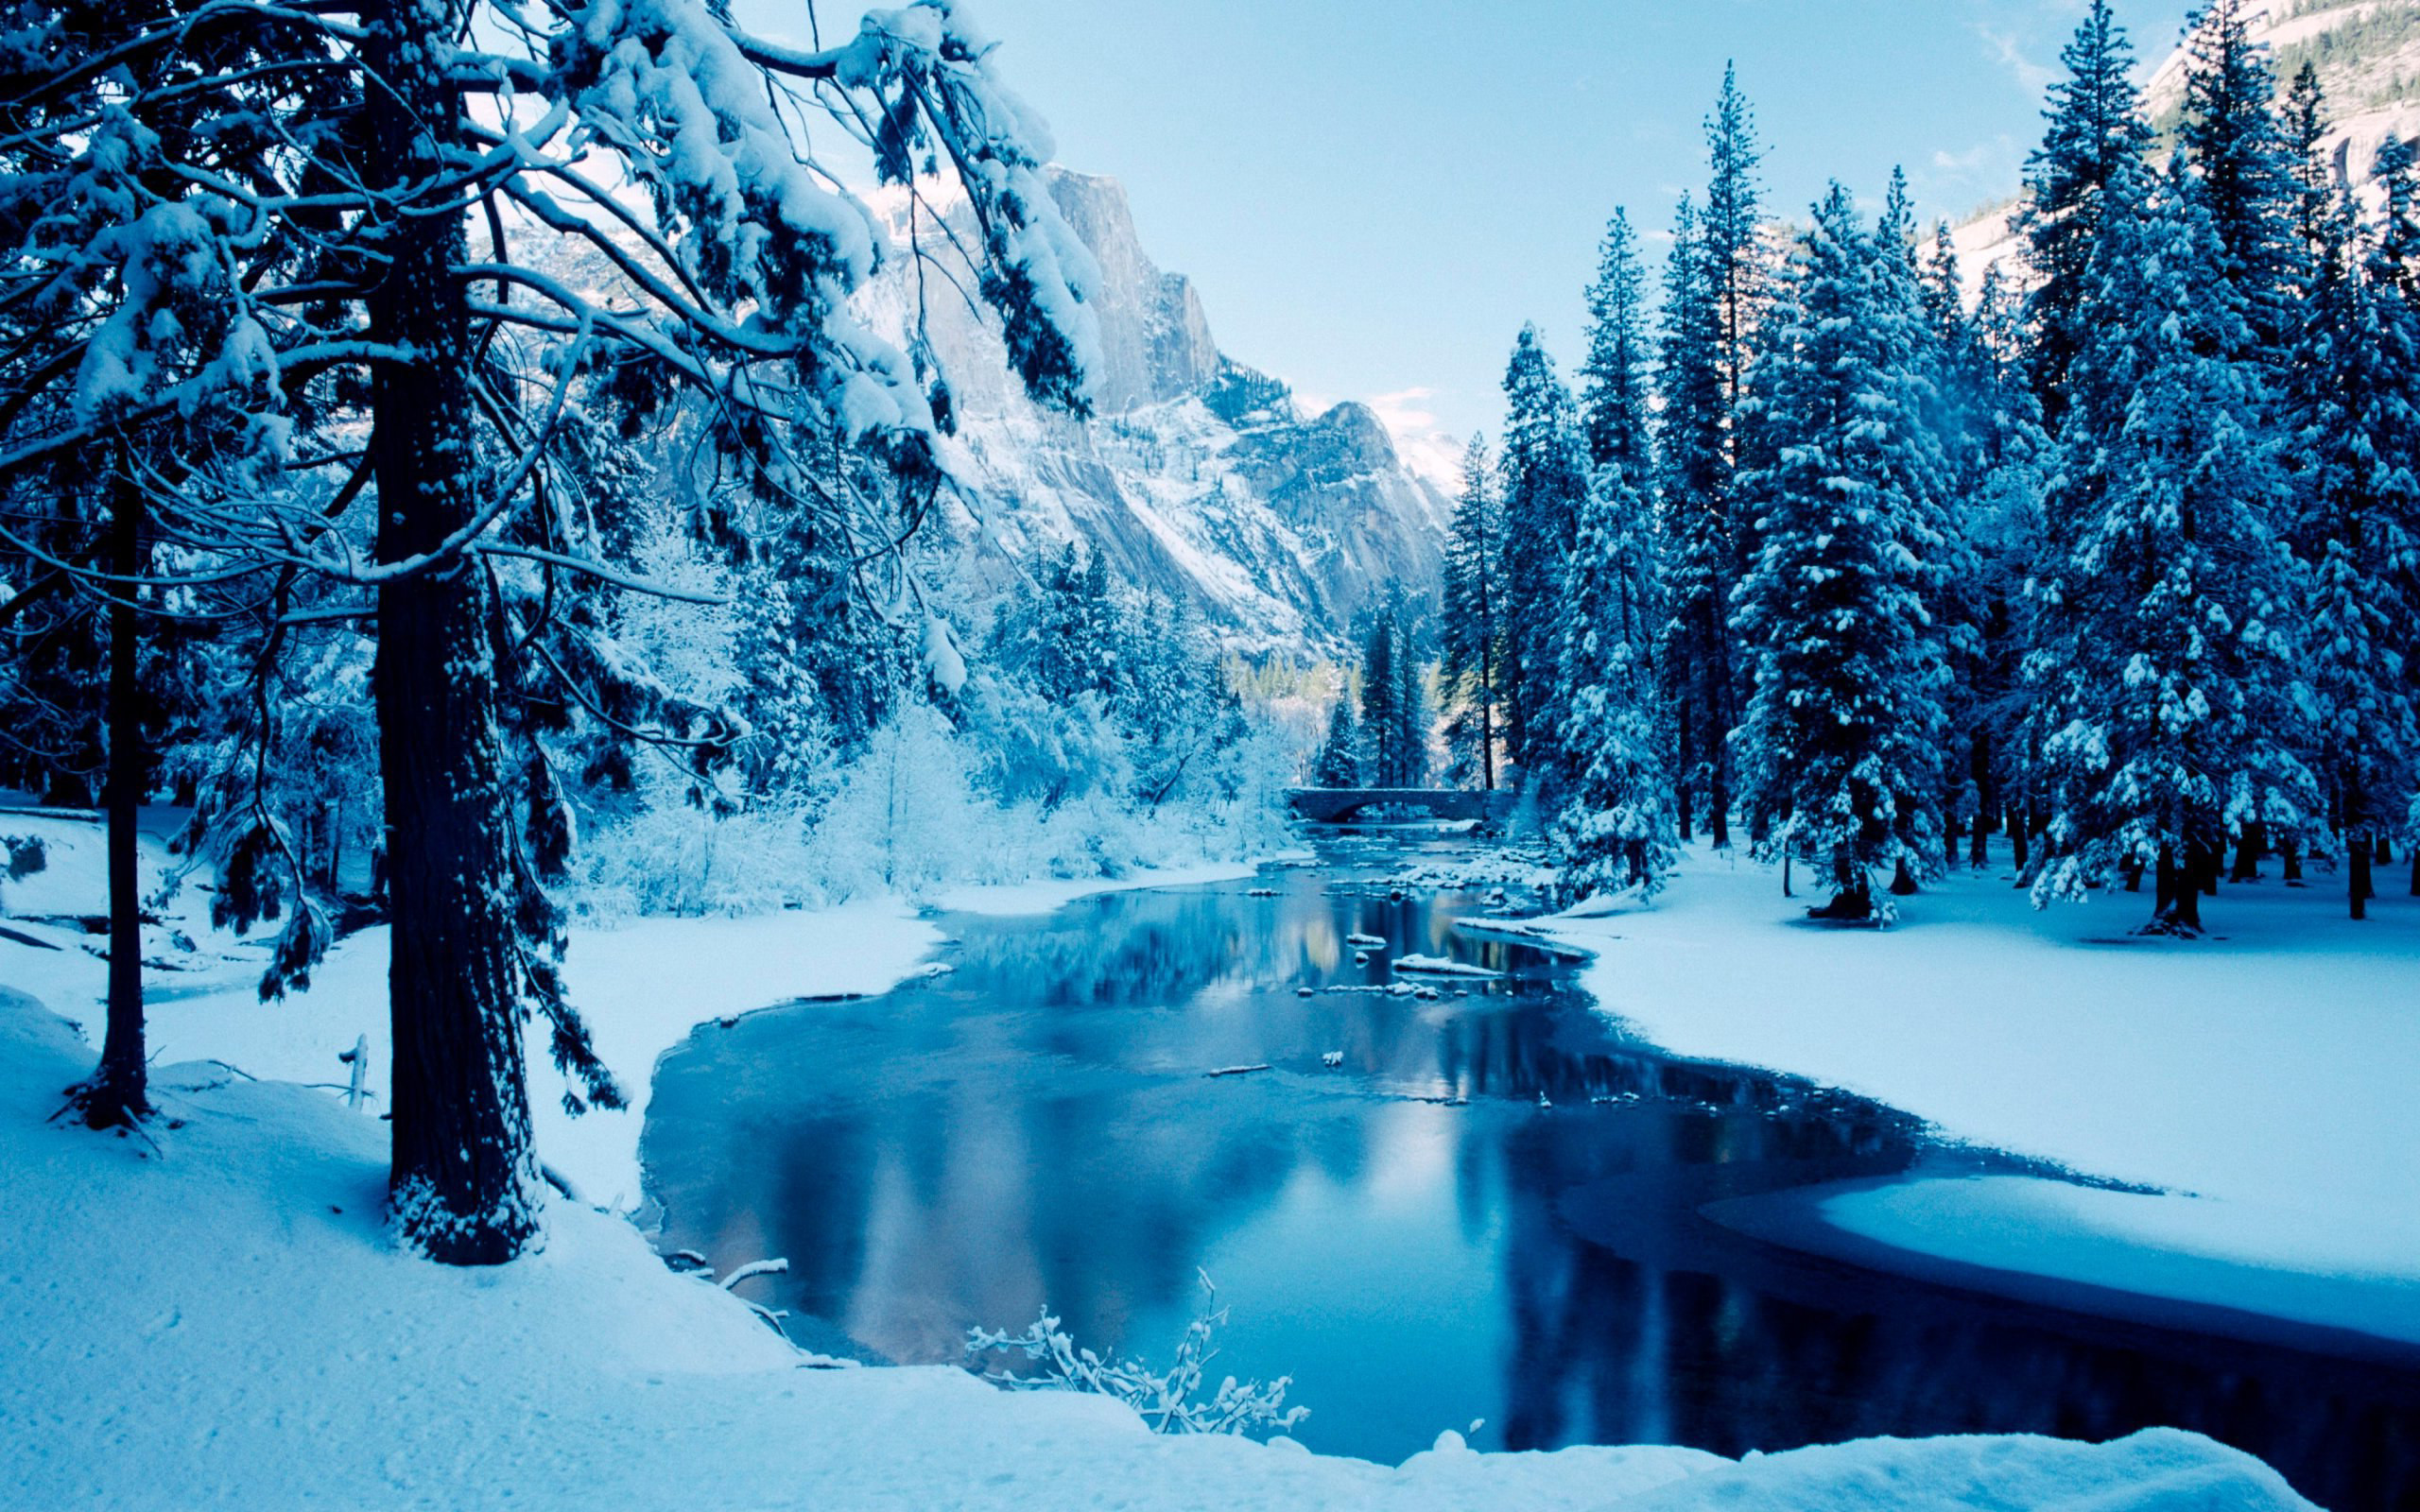 2560x1600 Windows Wallpaper Winter Scene Pictures to pin on Pinterest